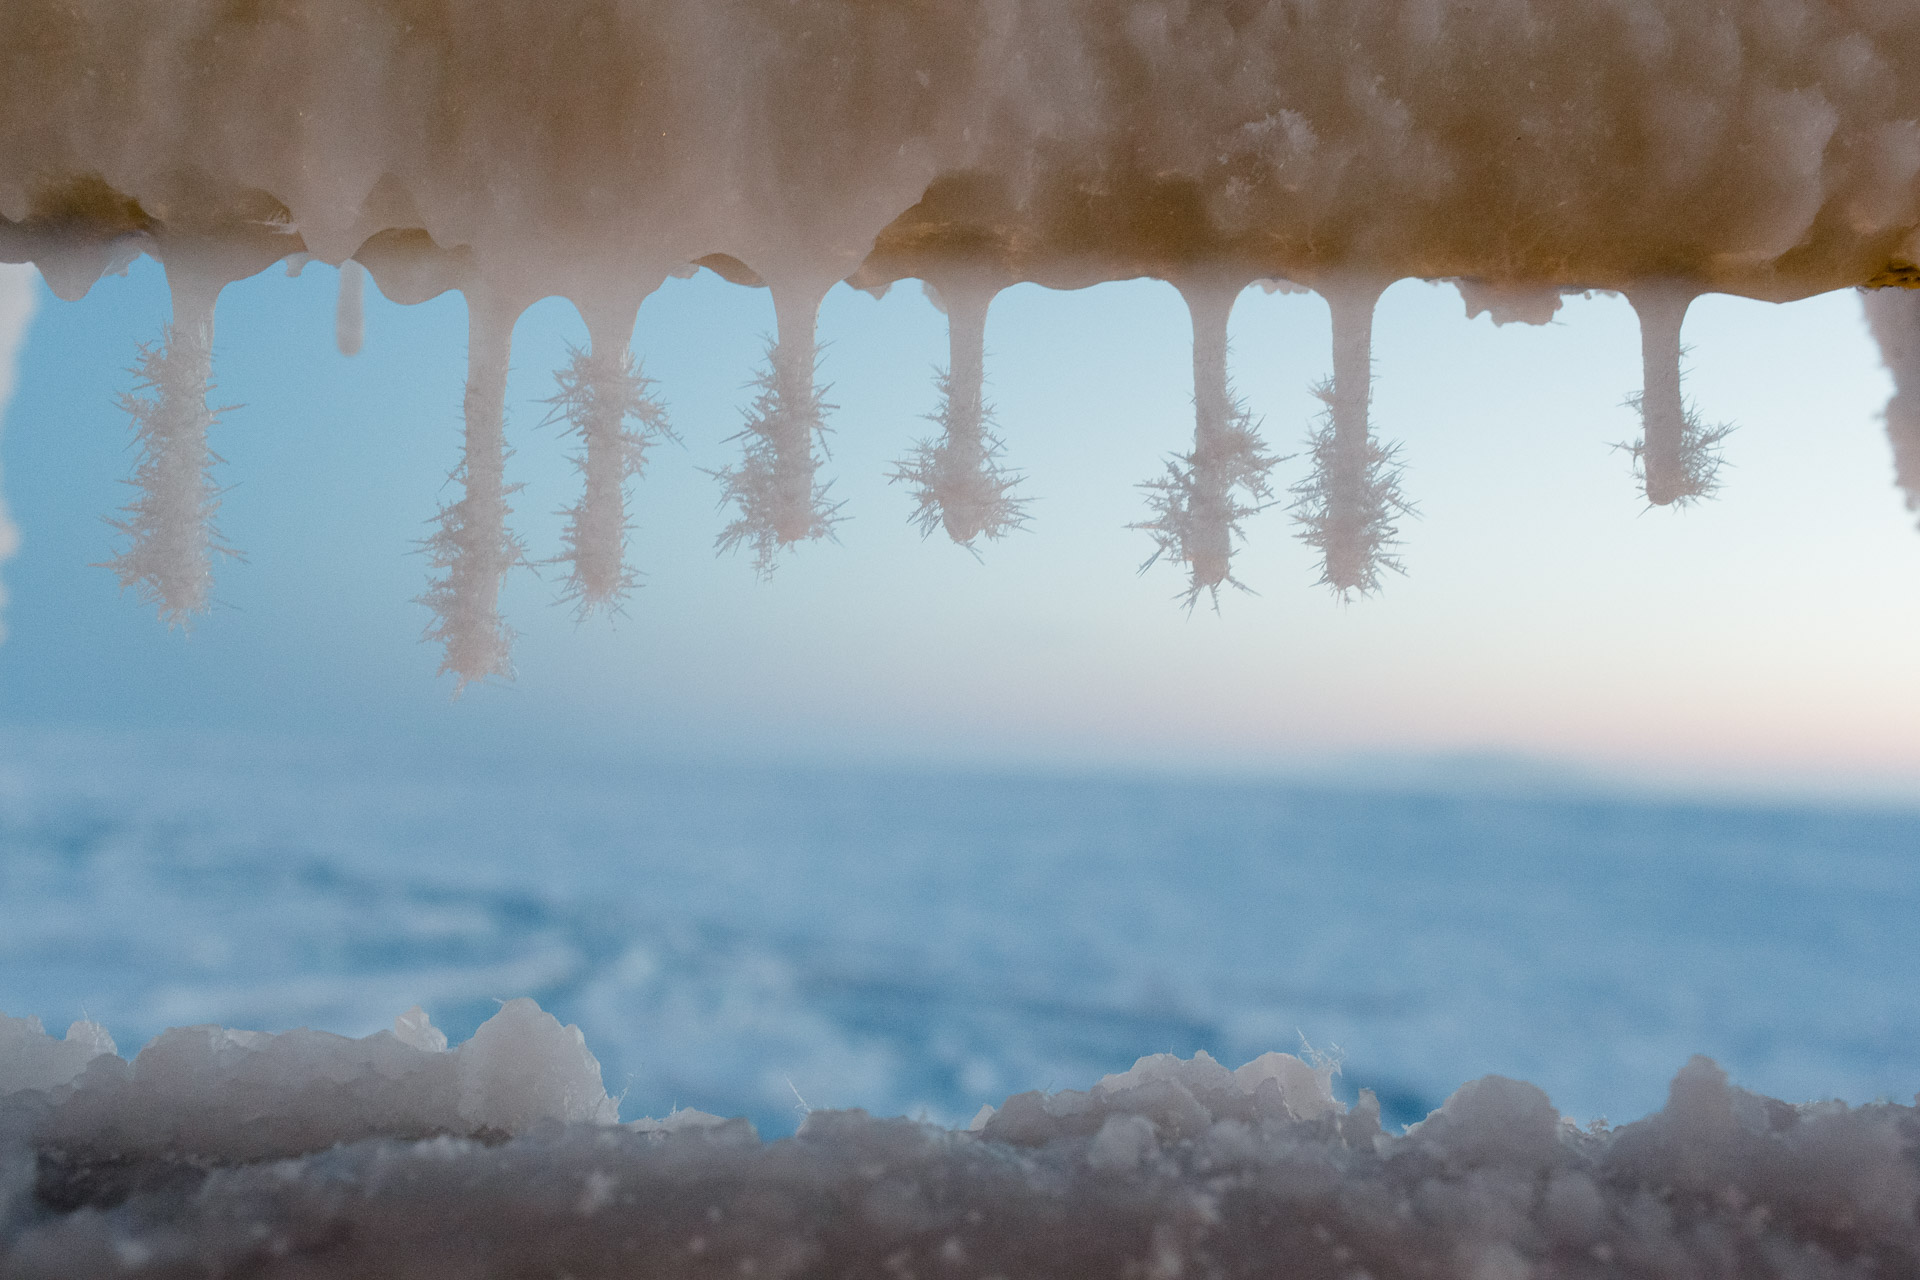 Detail of complex frost crystals growing downwards